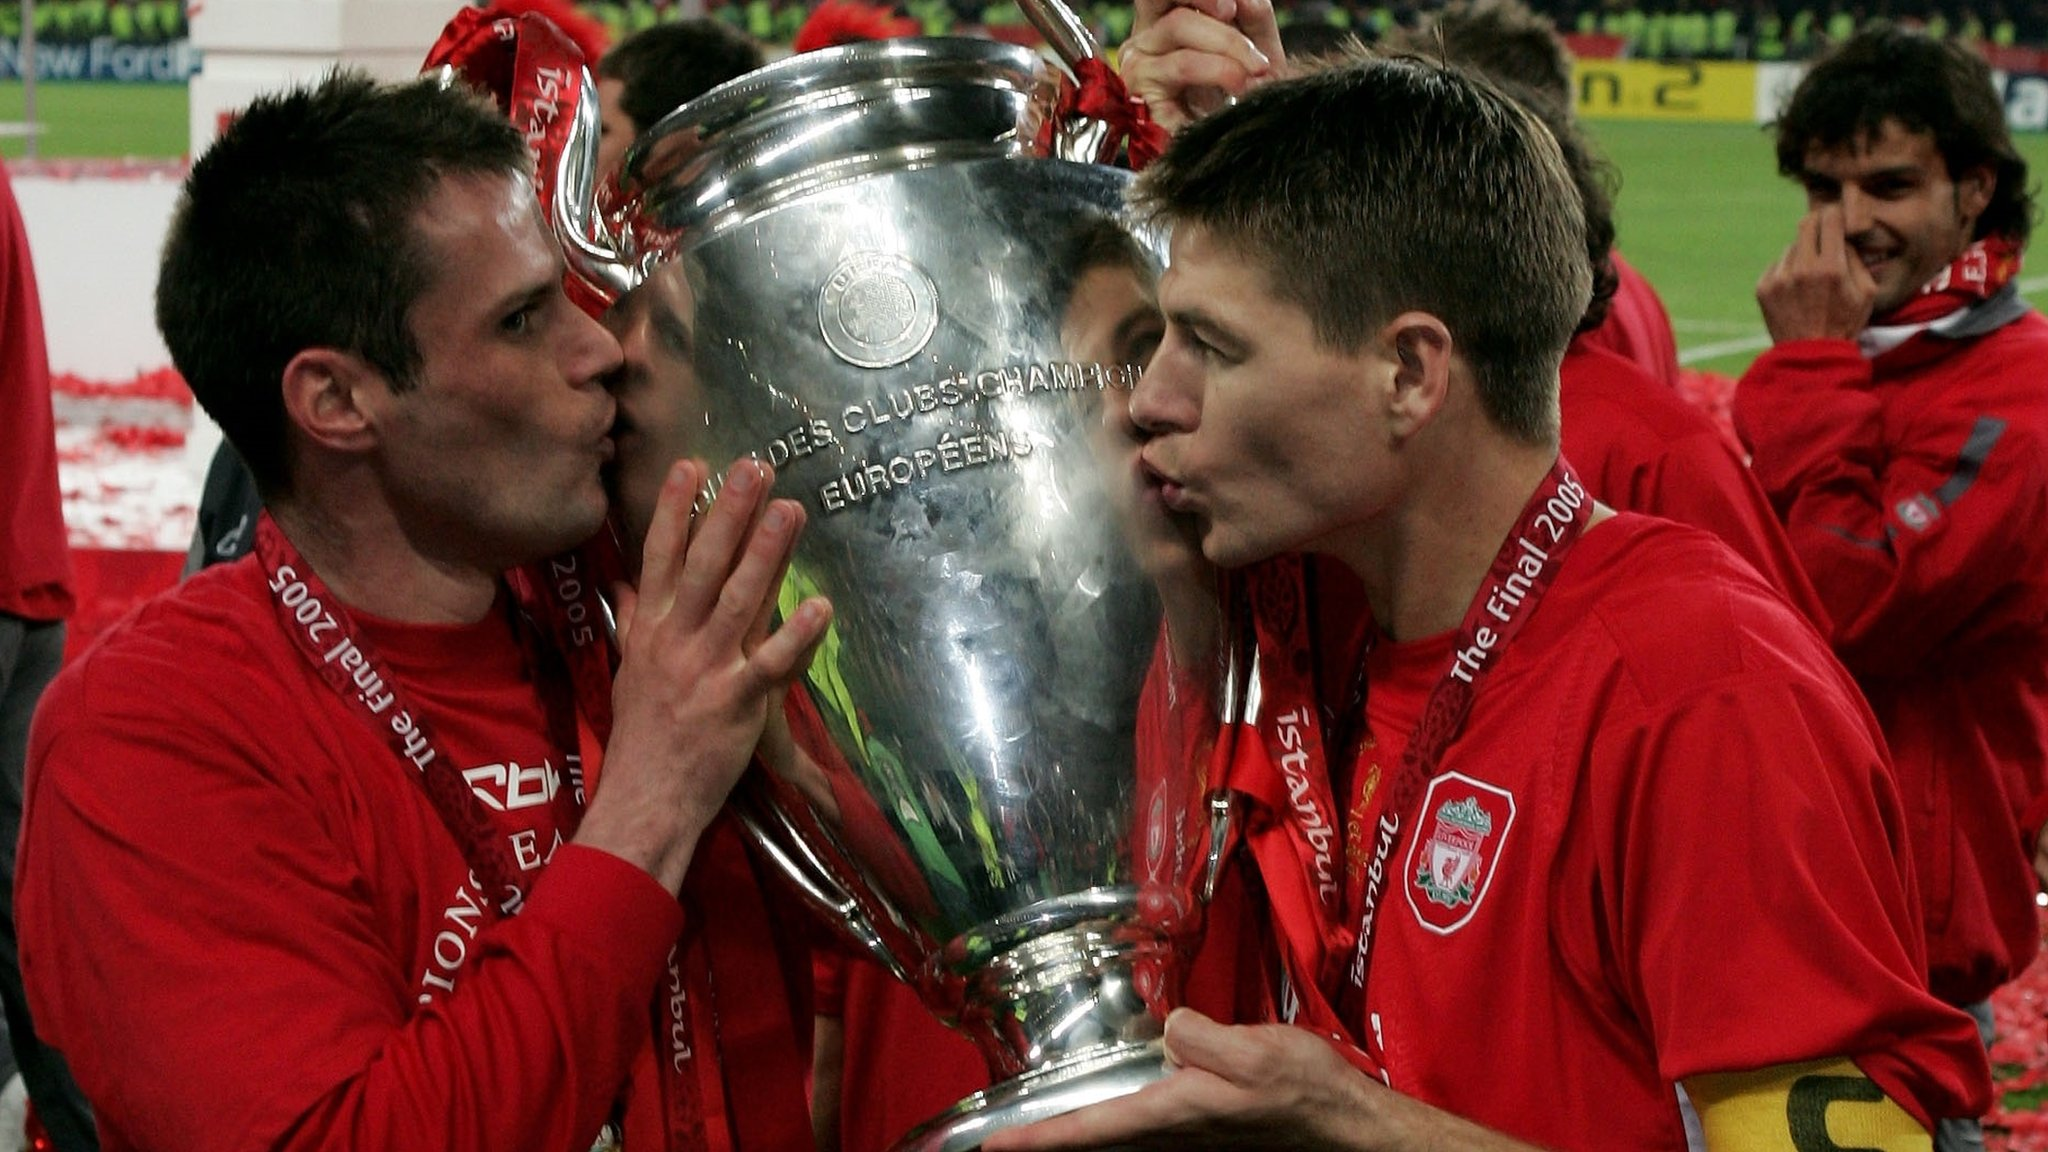 Champions League final quiz: Can you name Liverpool's 04-05 winners?